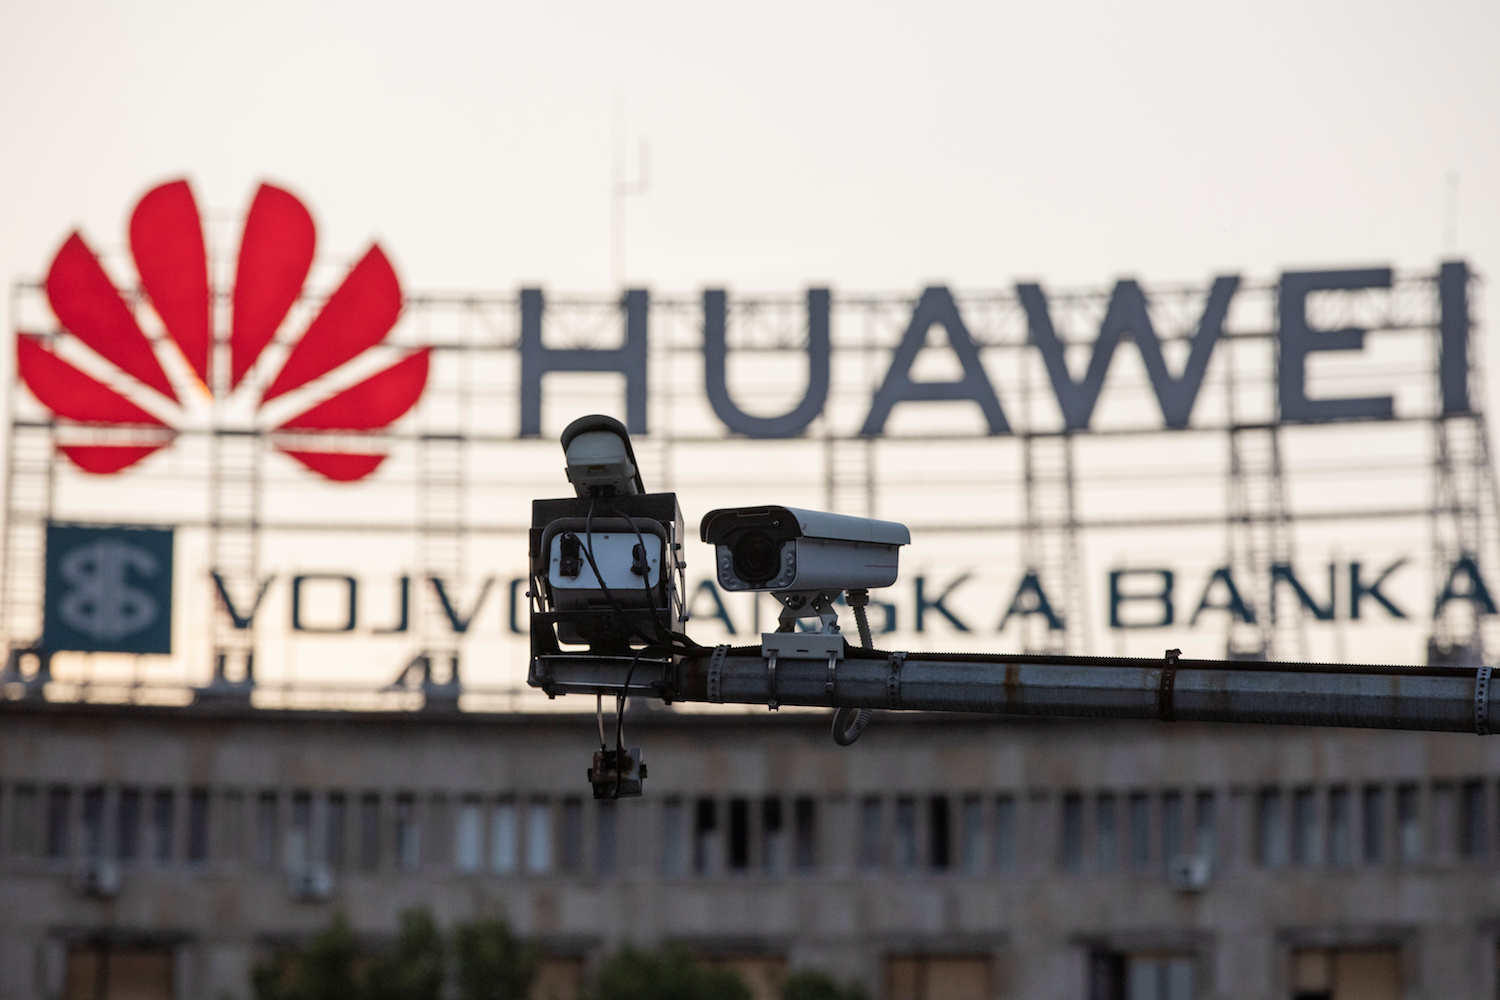 Huawei ready to reveal inner workings to show no security threat